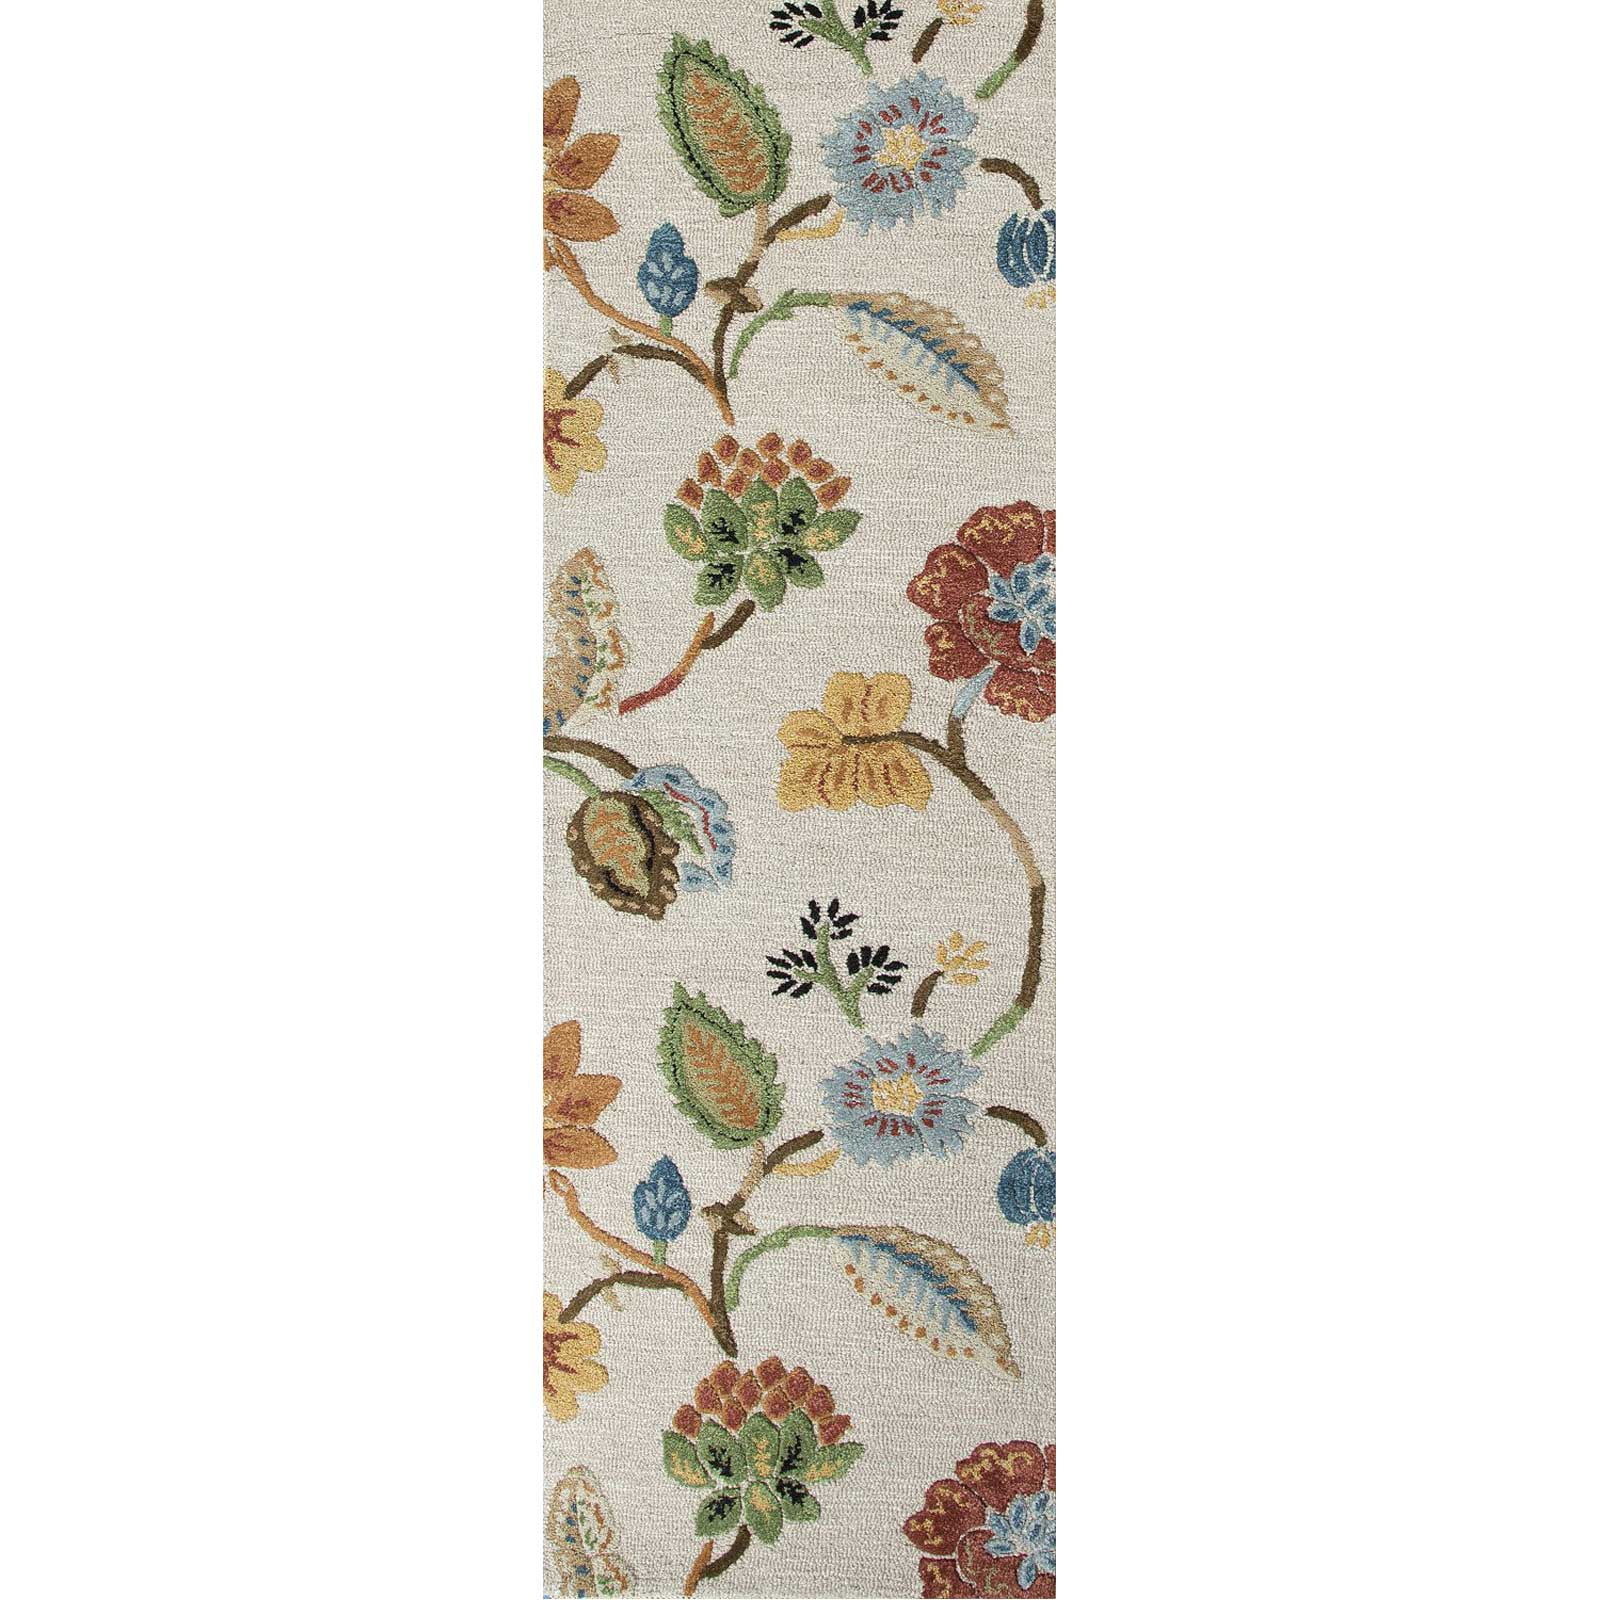 Blue Garden Party Antique White Runner Rug